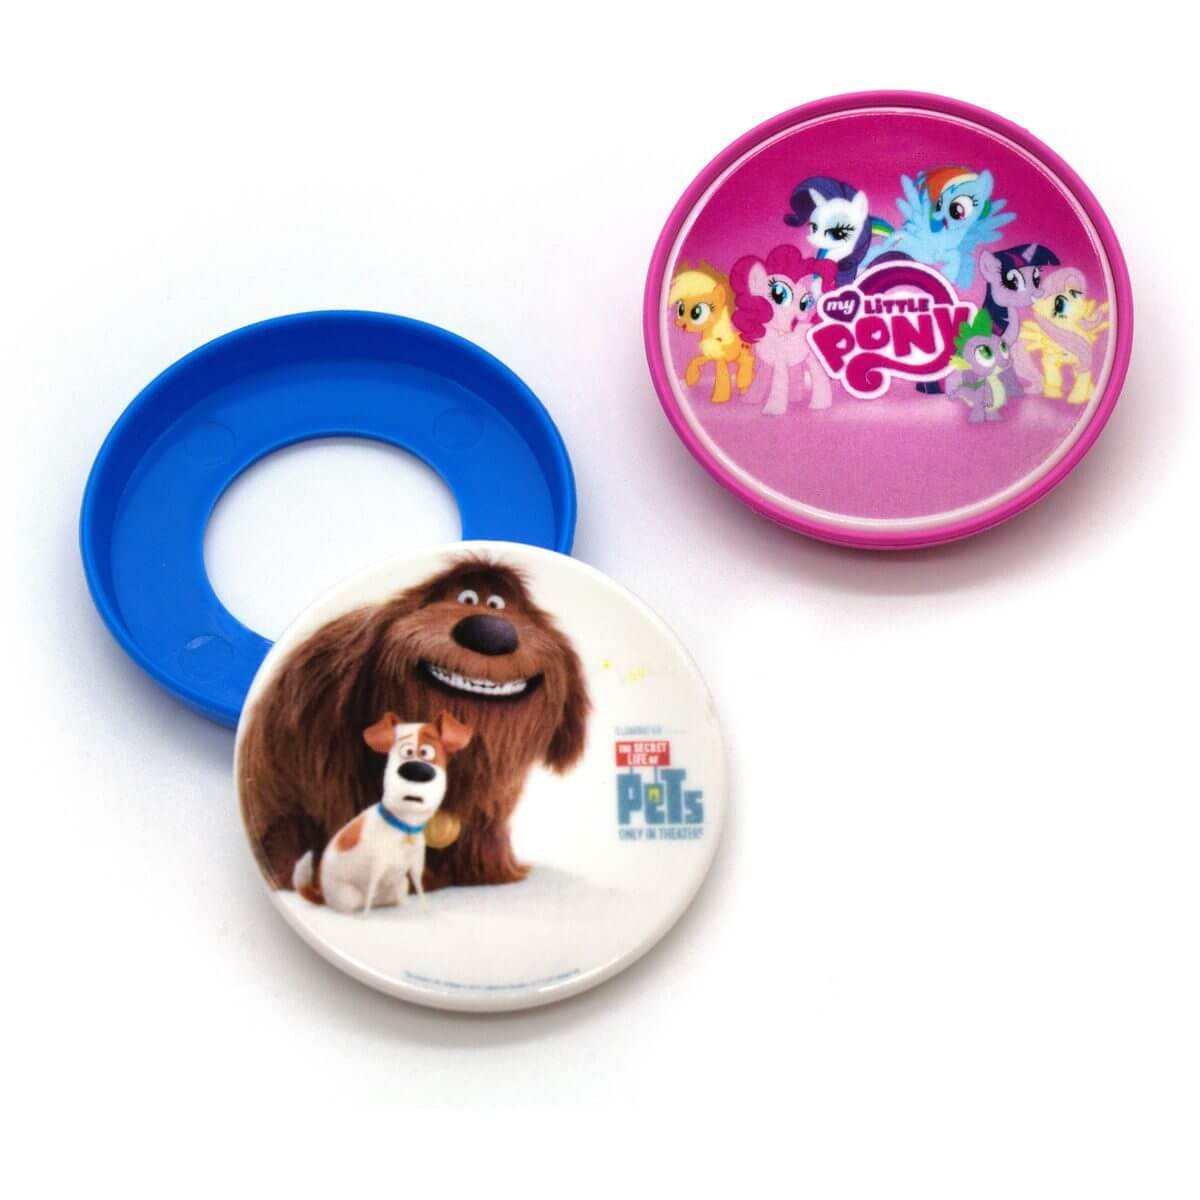 Recycled Child-Friendly Badges